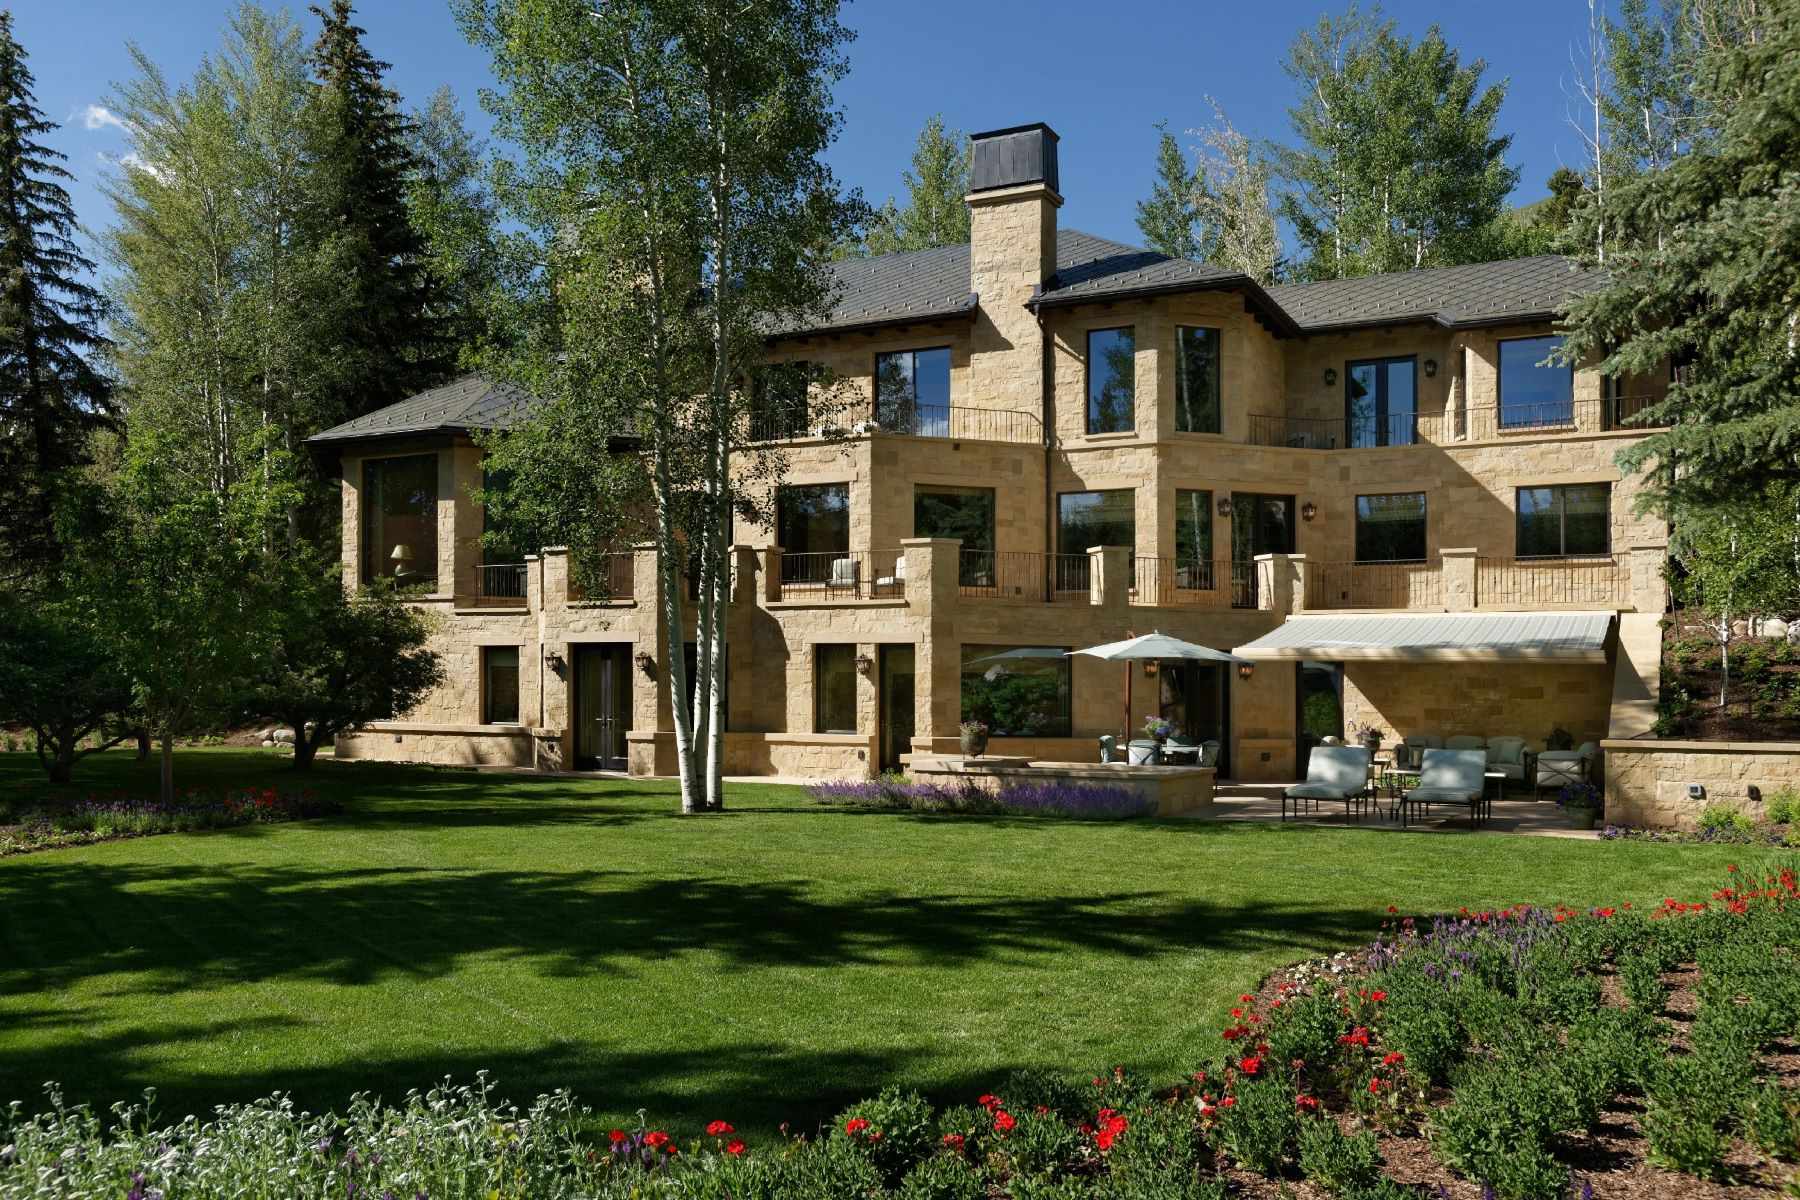 Single Family Homes for Sale at Aspen's Best Address 64 Pitkin Way, Aspen, Colorado 81611 United States